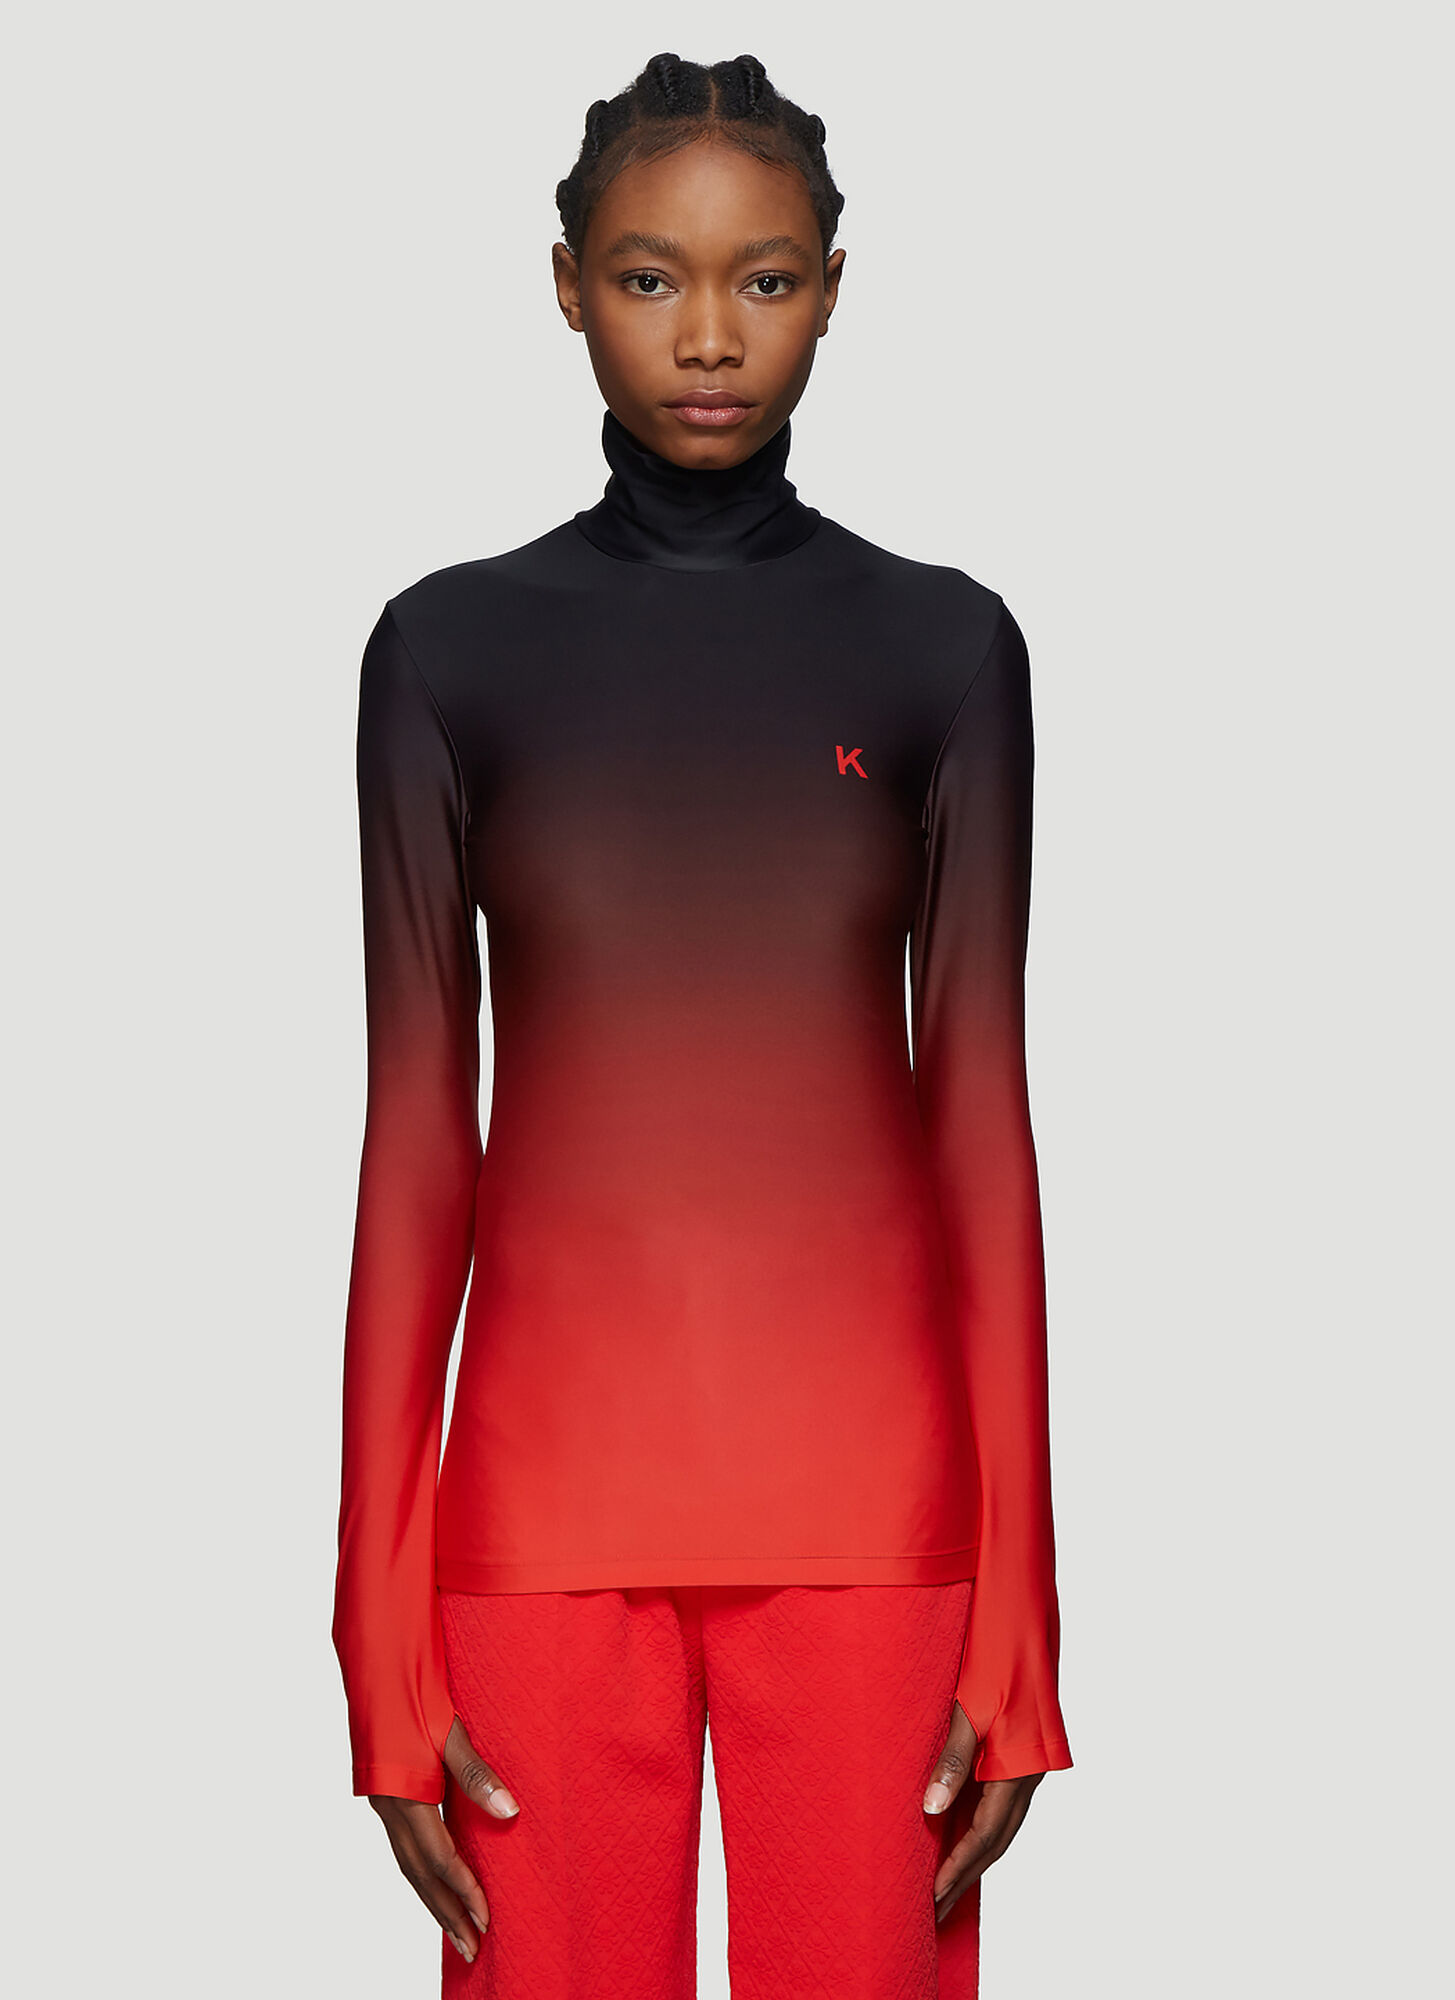 Kwaidan Editions Turtleneck Top in Red